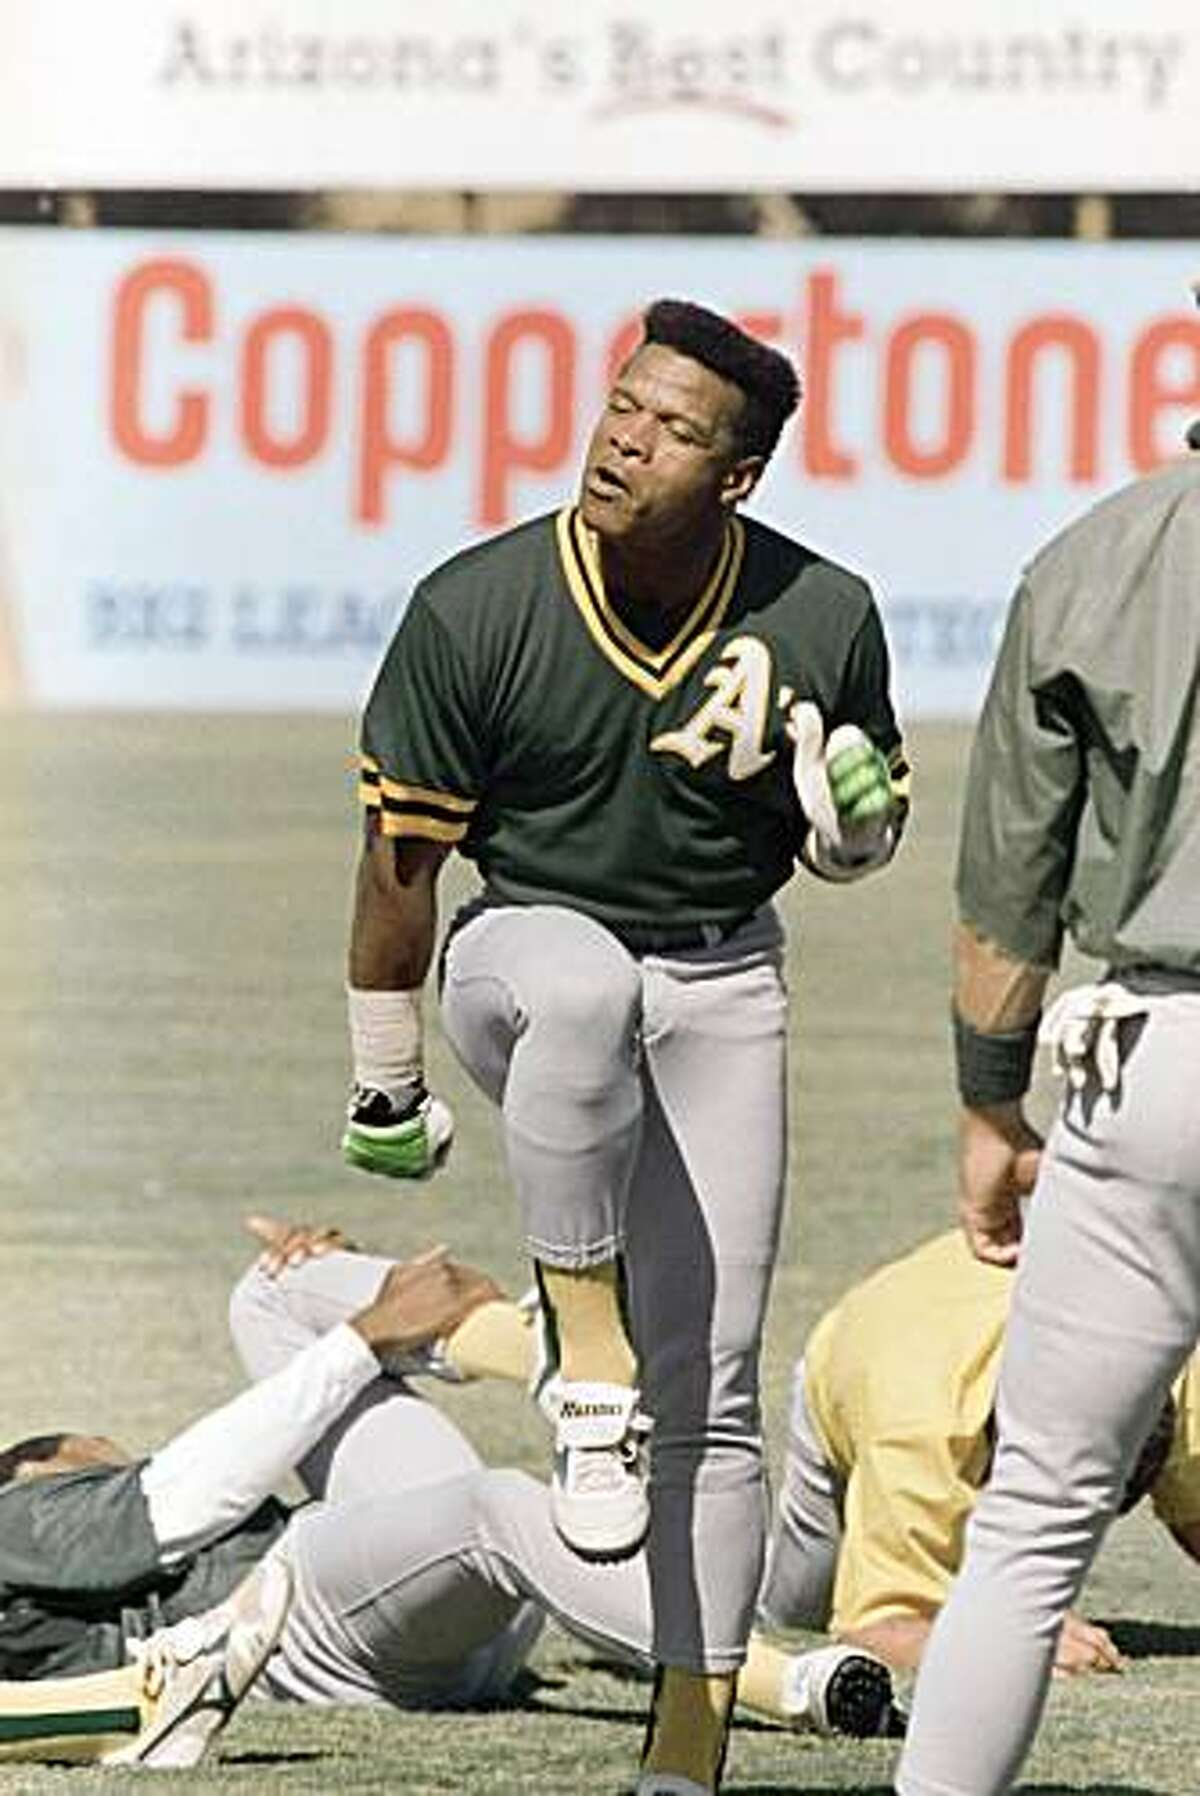 Oakland A's outfielder Rickey Henderson stomps out a World Series dance step during warm up exercise for practice in Phoenix, Thursday, Oct. 26, 1989. The A's are at their spring training site to workout for the resumption of the World Series against the San Francisco Giants, which continues Friday night.